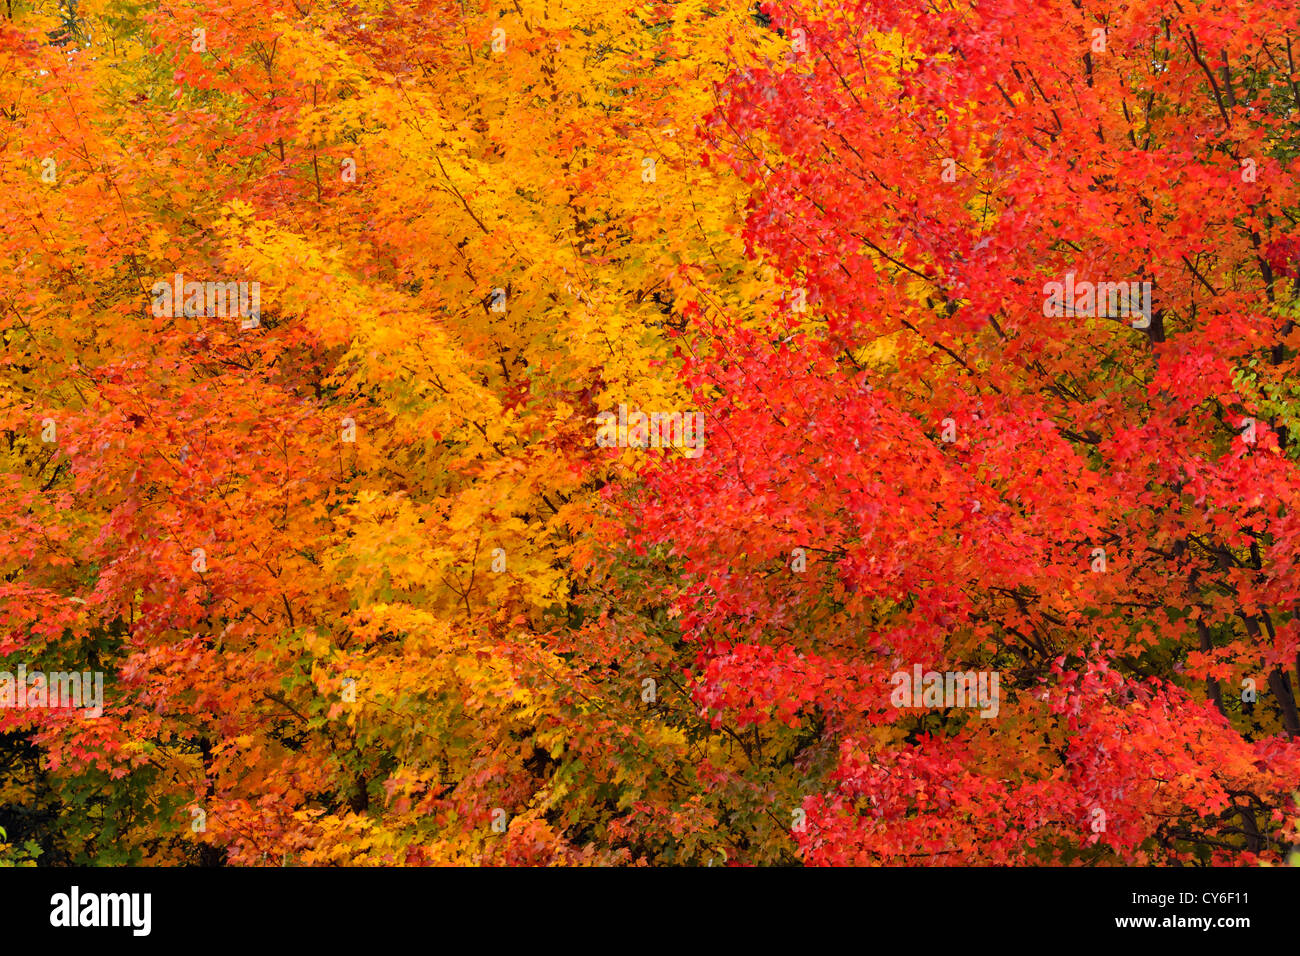 Autumn Colour In A Forest Of Mature Sugar Maple Trees